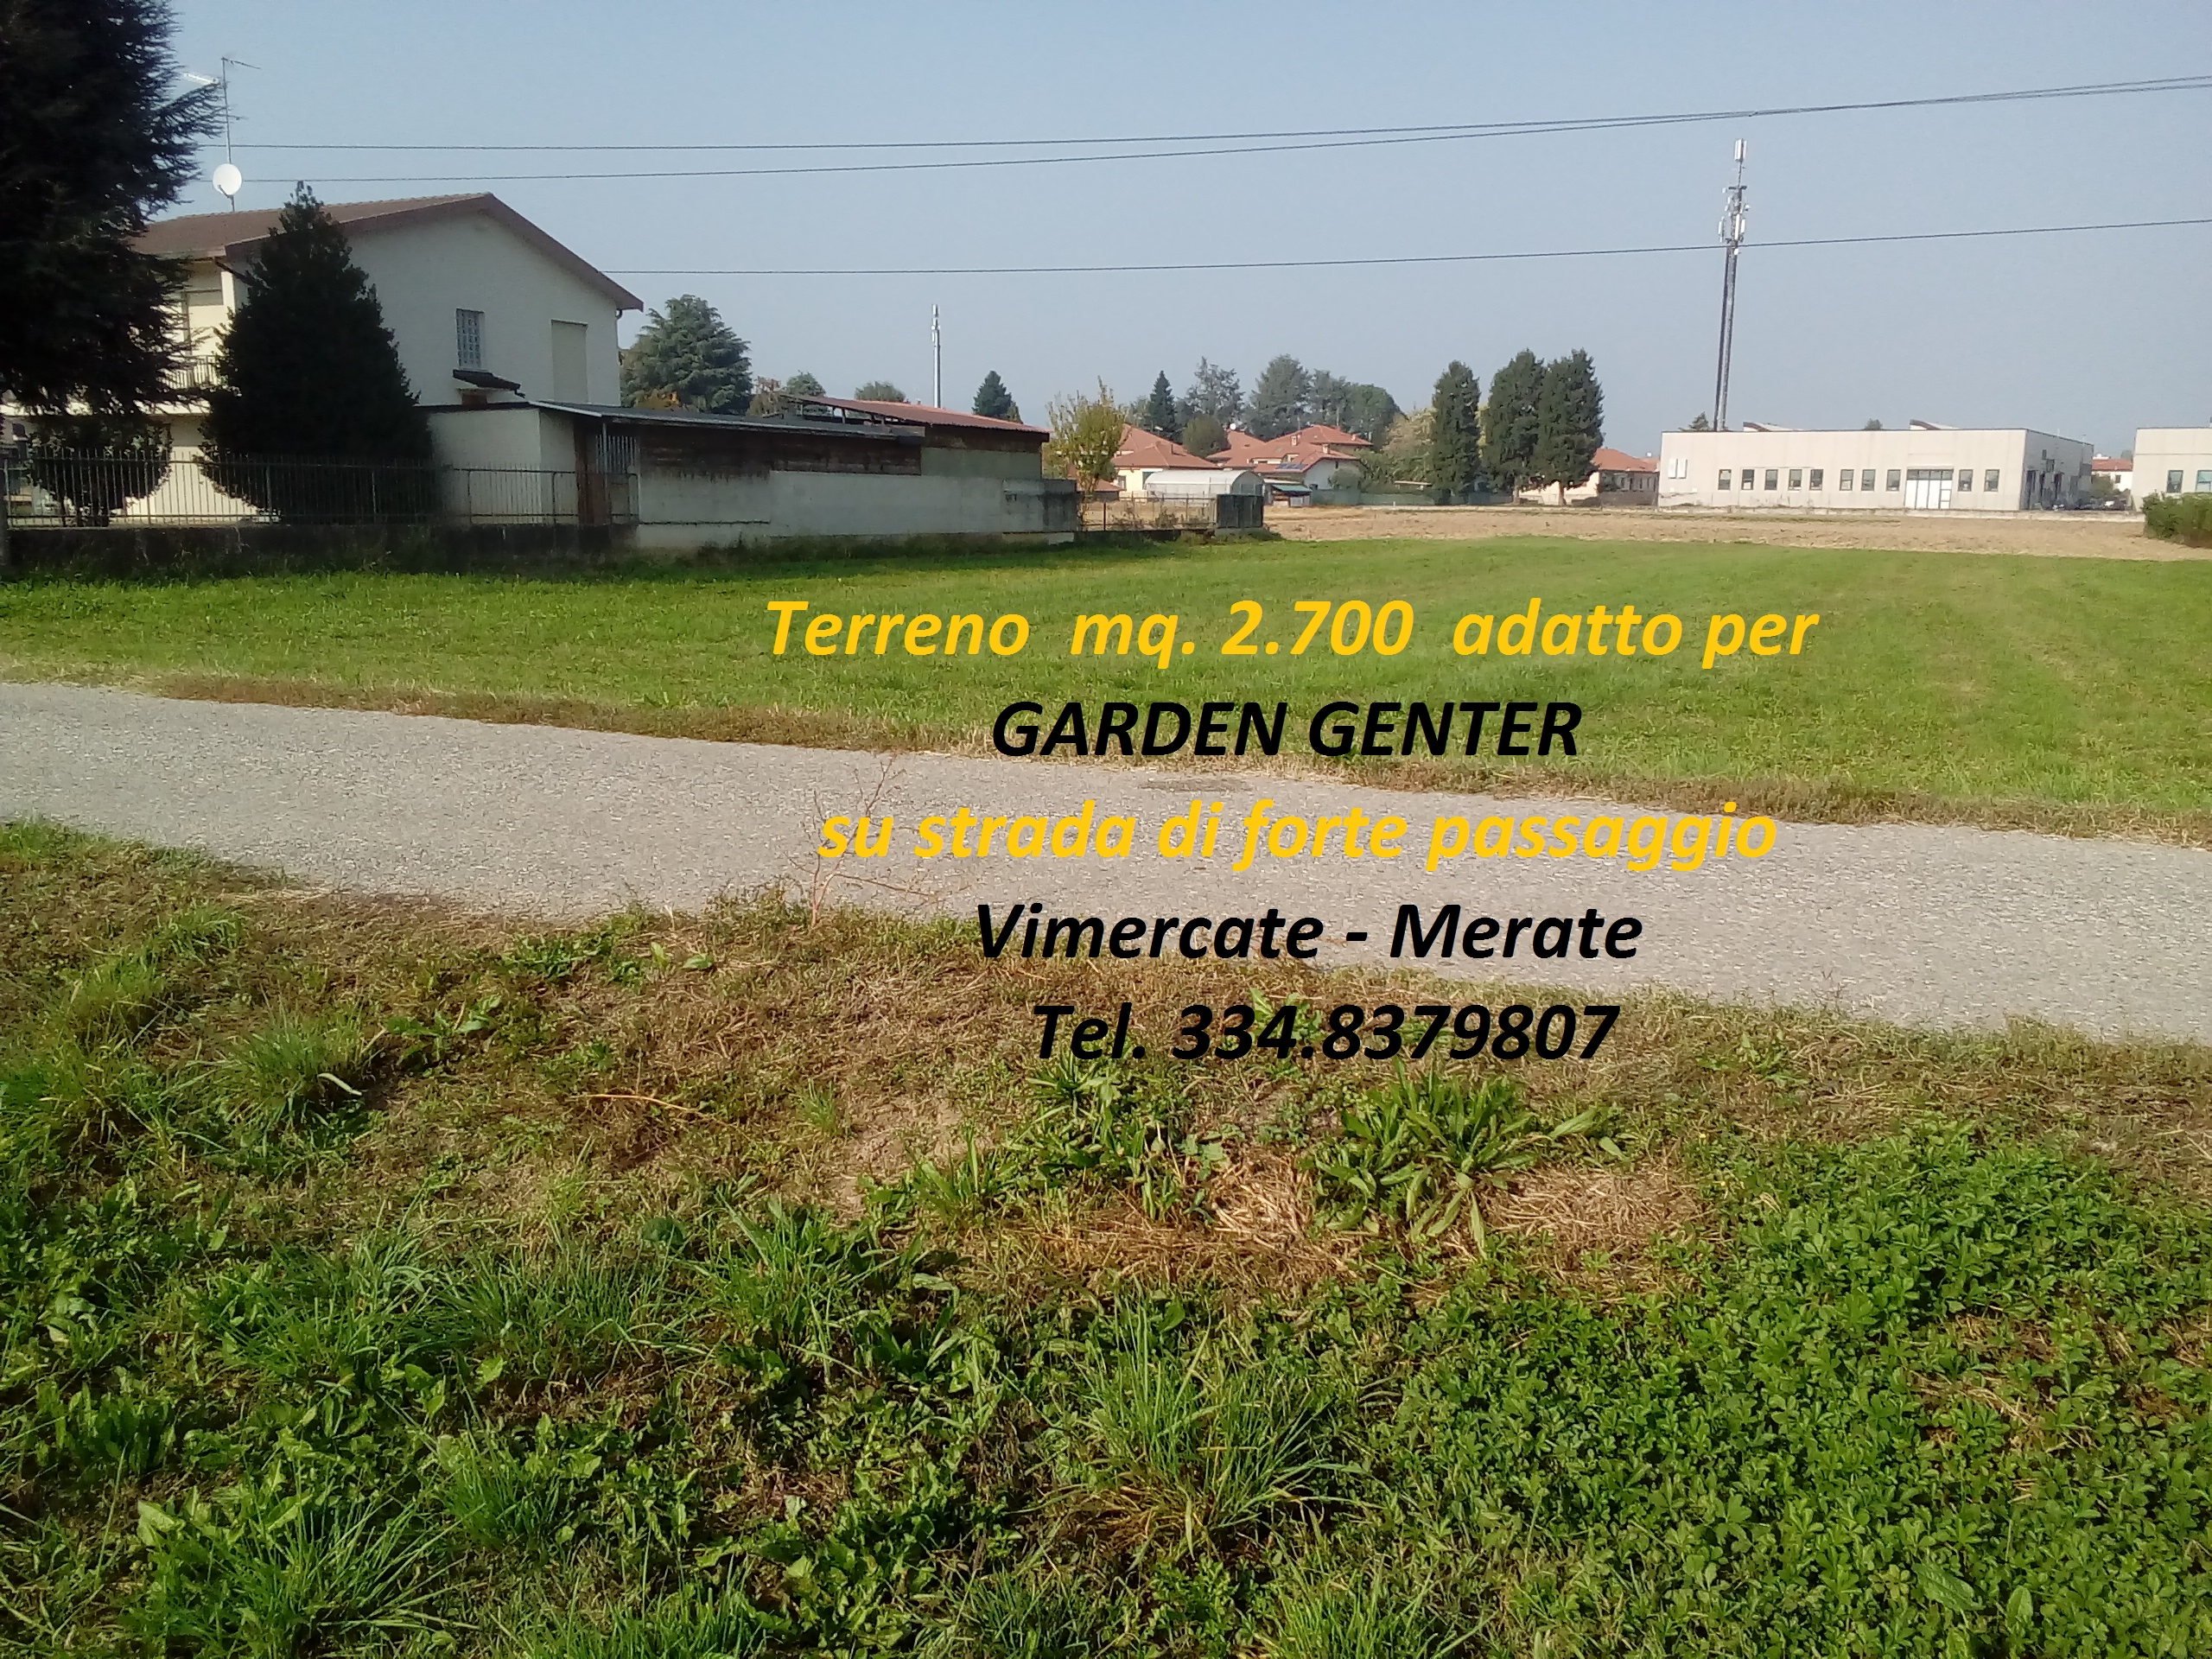 Terreno adatto per GARDEN  CENTER